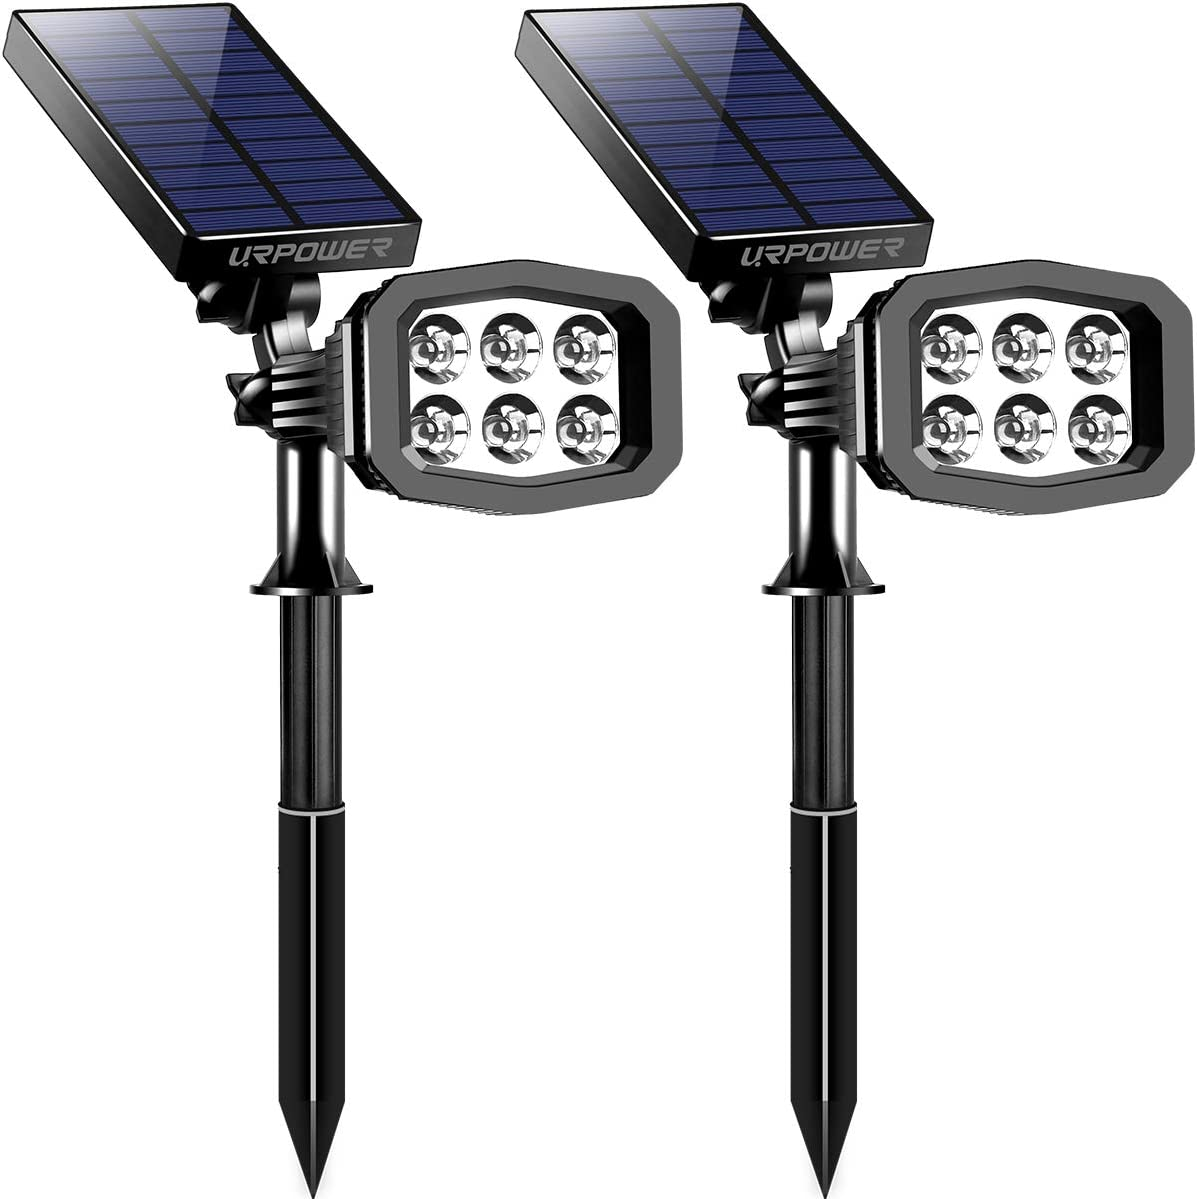 URPOWER Solar Lights Outdoor, Upgraded 6 LED 2-in-1 Waterproof Solar Spotlights 2 Modes Auto On Off Wireless Wall Lights Pathway Lights Landscape Lighting for Garden Yard Pool Patio Cold White 2 Pack